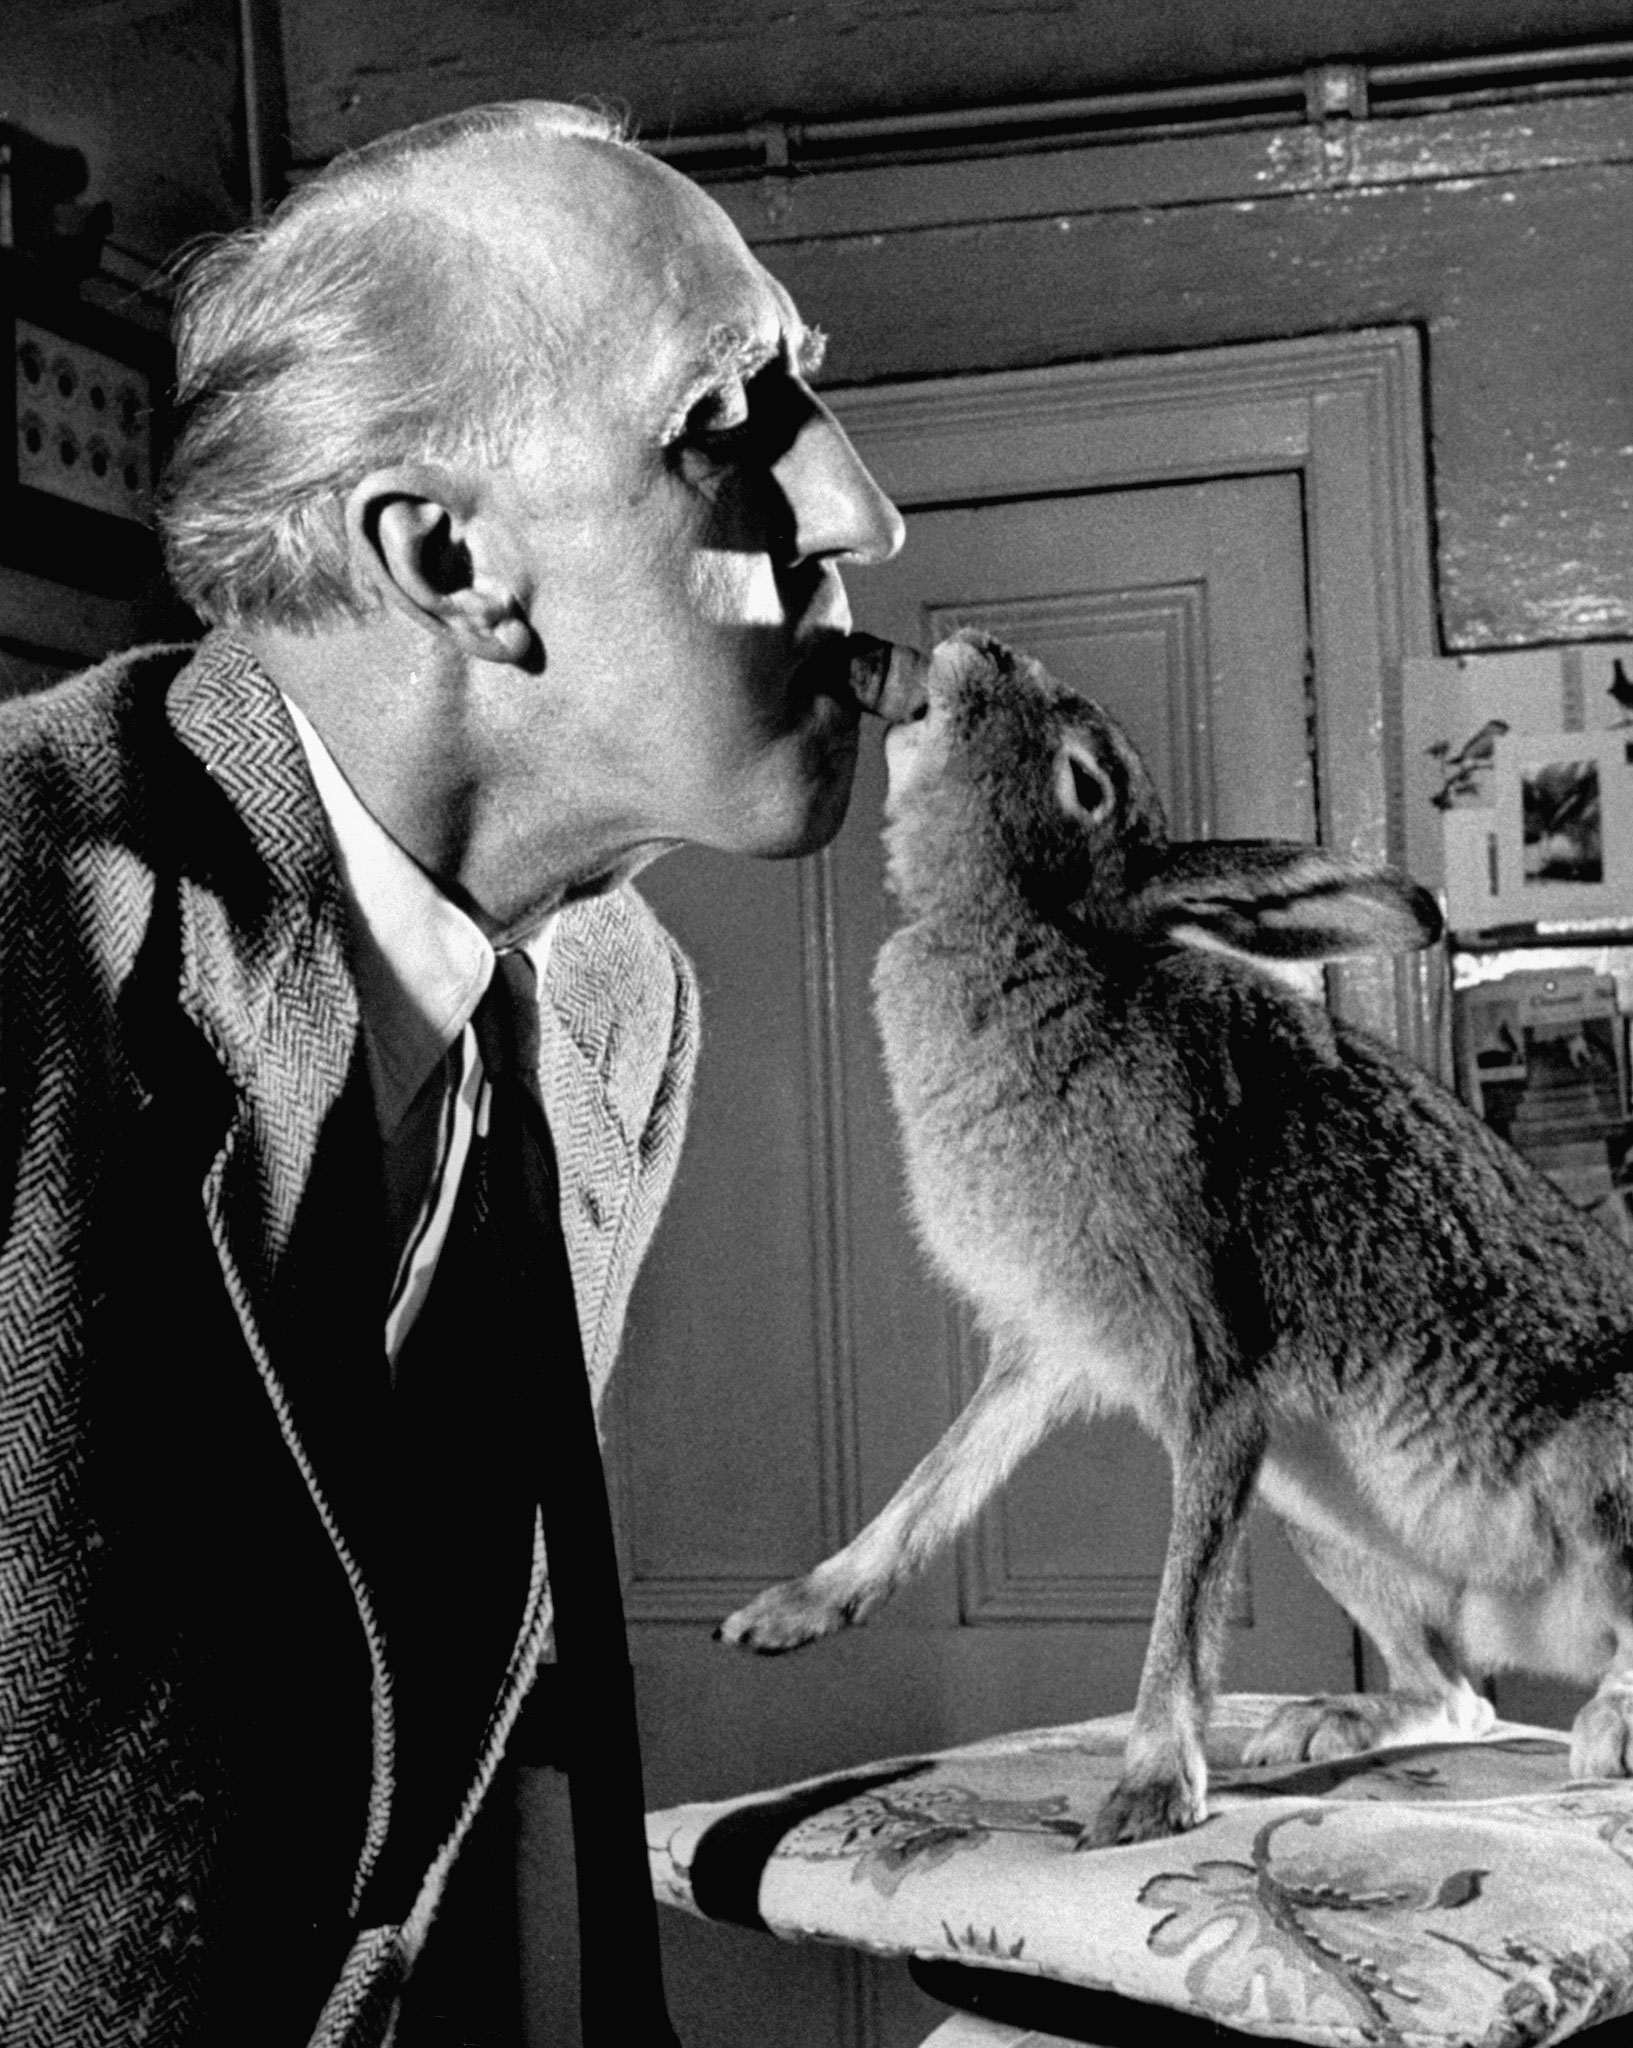 Cecil S. Webb, director of the Dublin Zoo, with Horace the hare